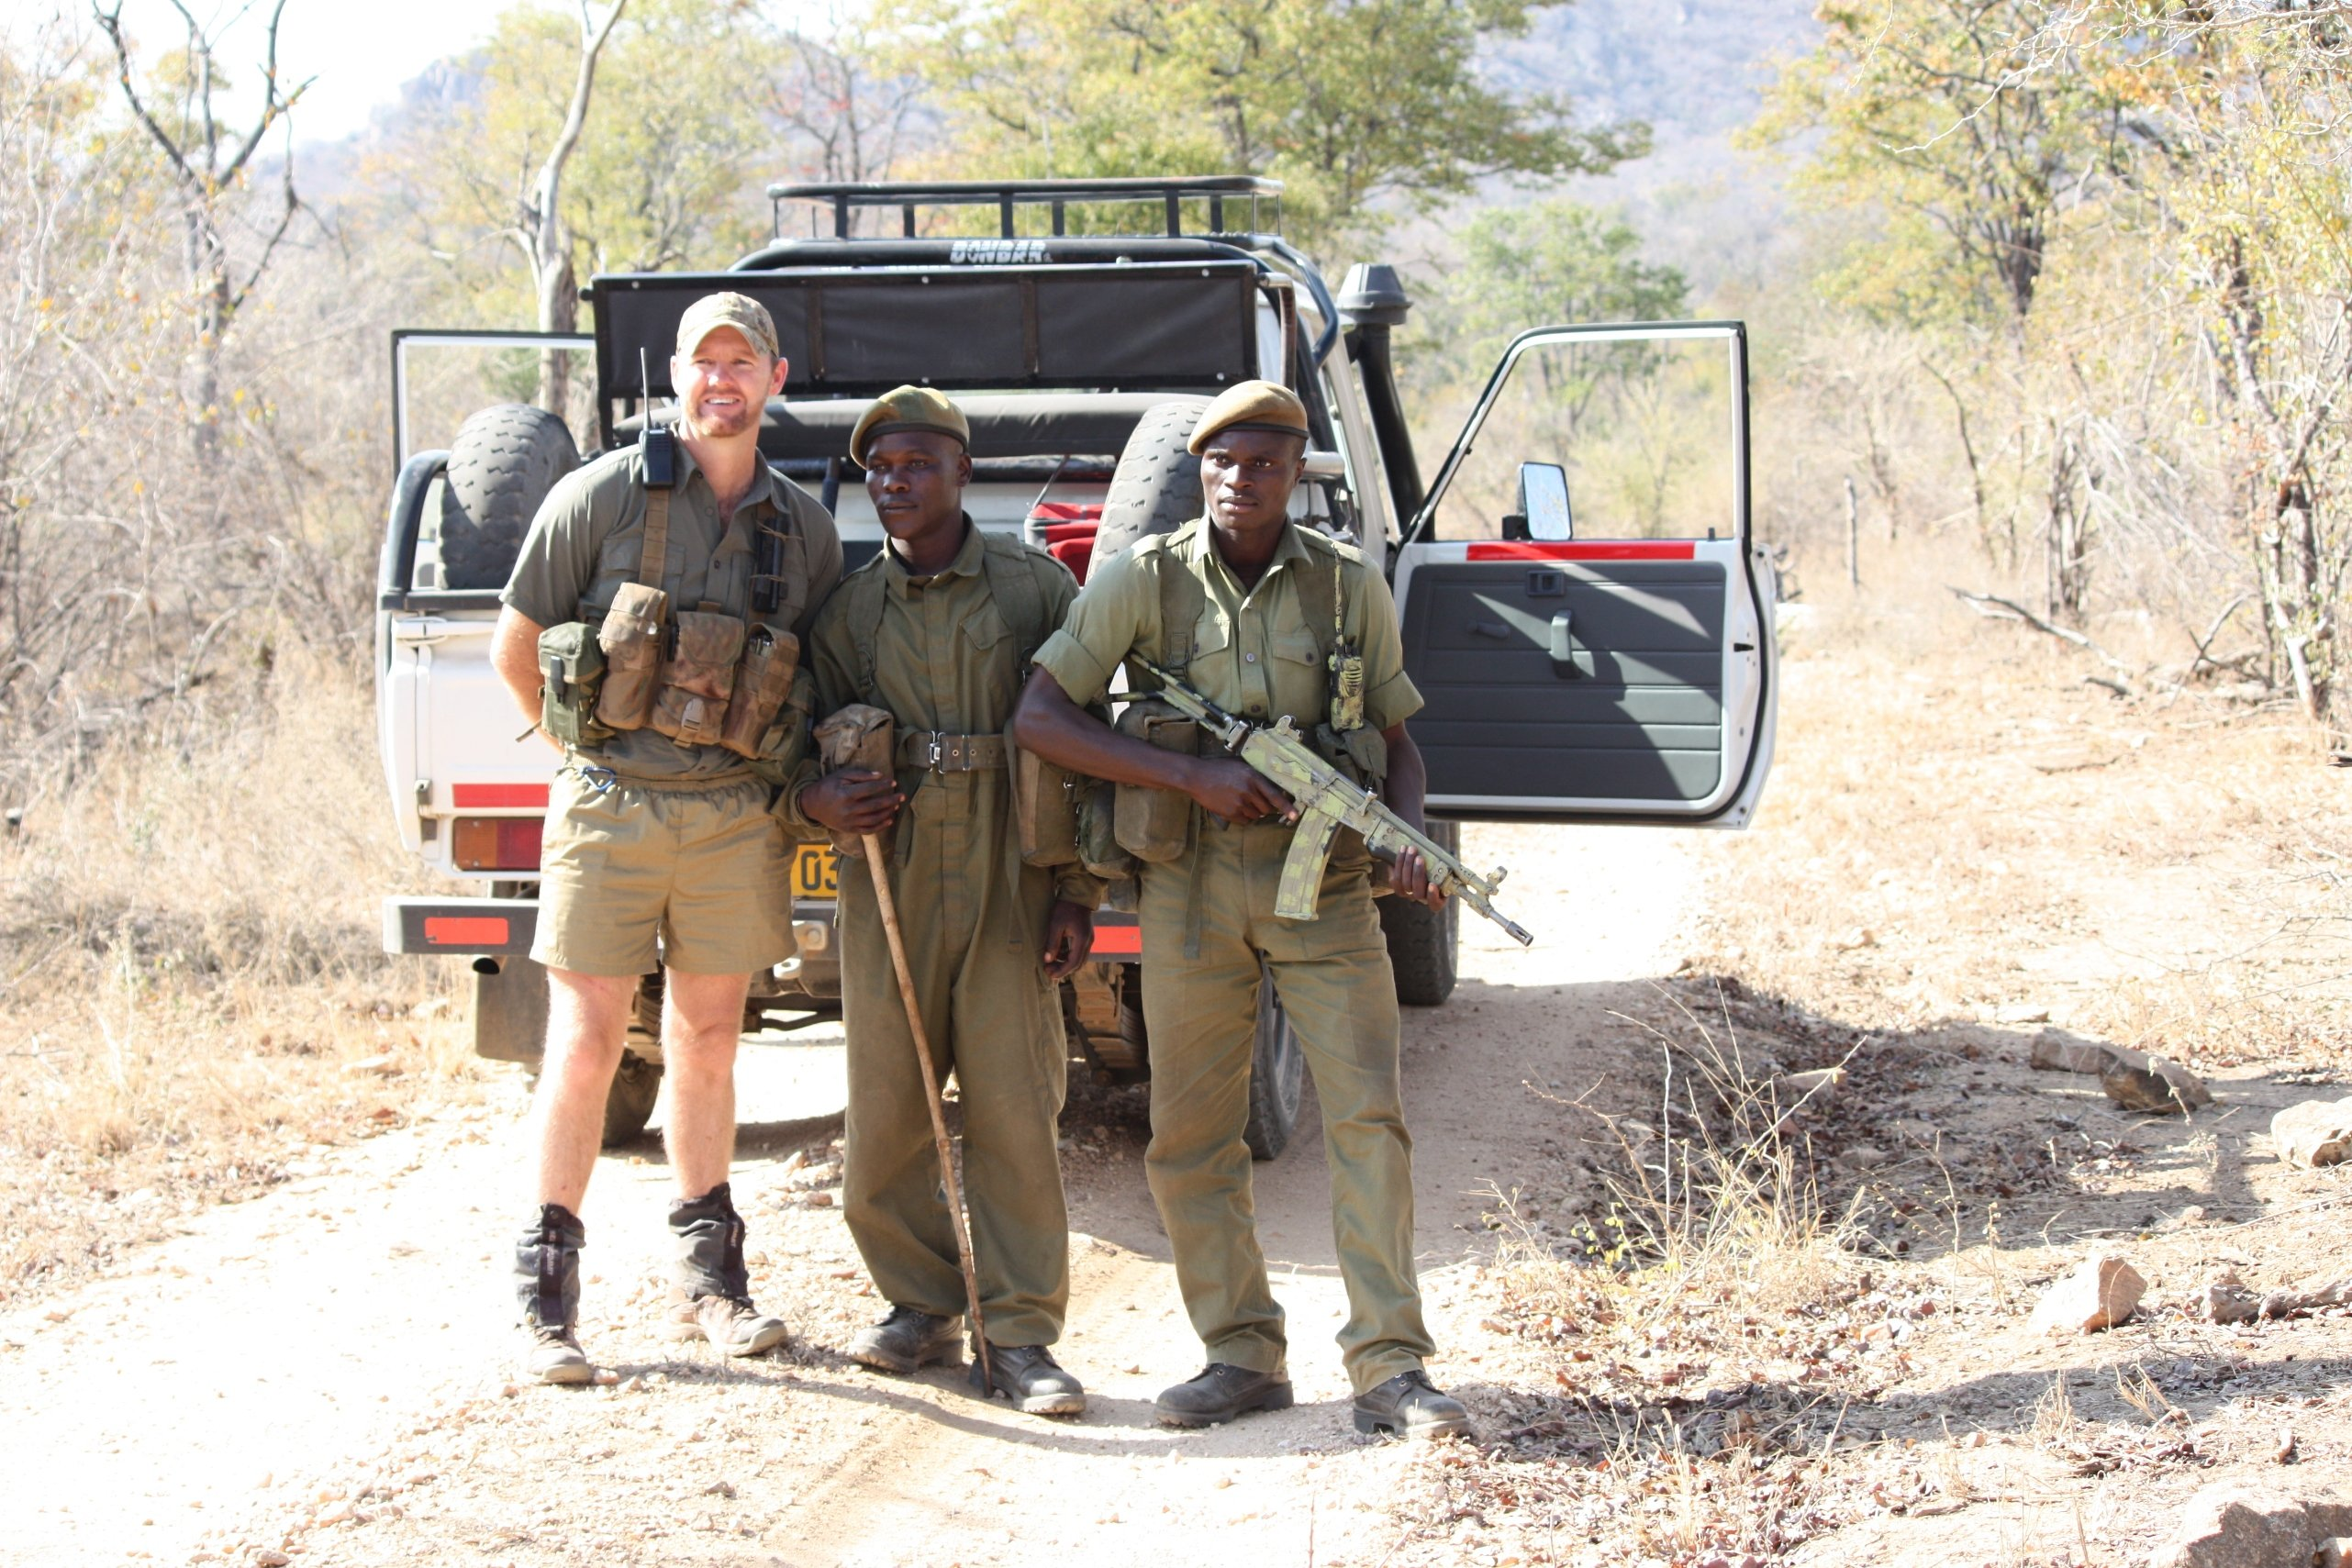 Anti-Poaching and Tracking Specialists (ATS) im Kampf gegen Wilderei